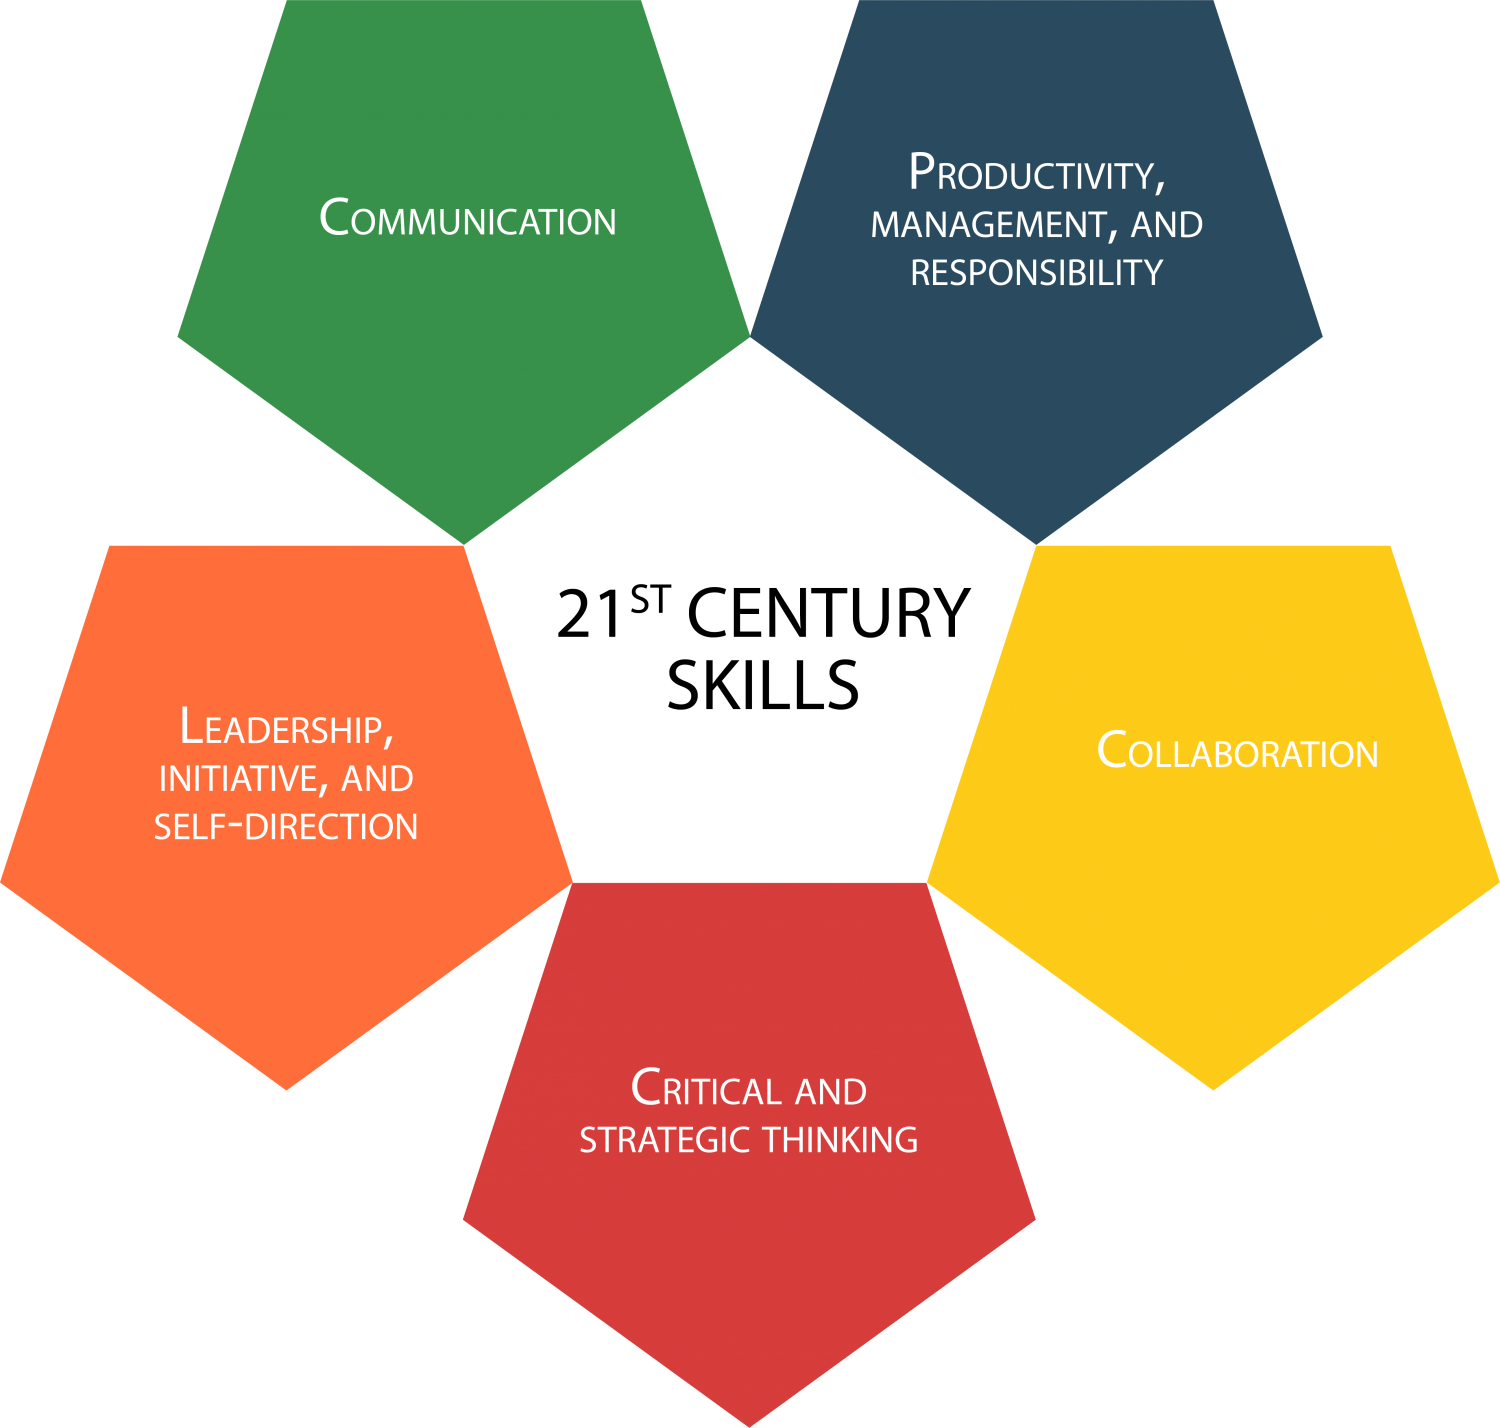 21st Century Skills: Communication | Productivity, Management, and Responsibility | Collaboration | Critical and Strategic Thinking | Leadership, Initiative, and Self-Direction